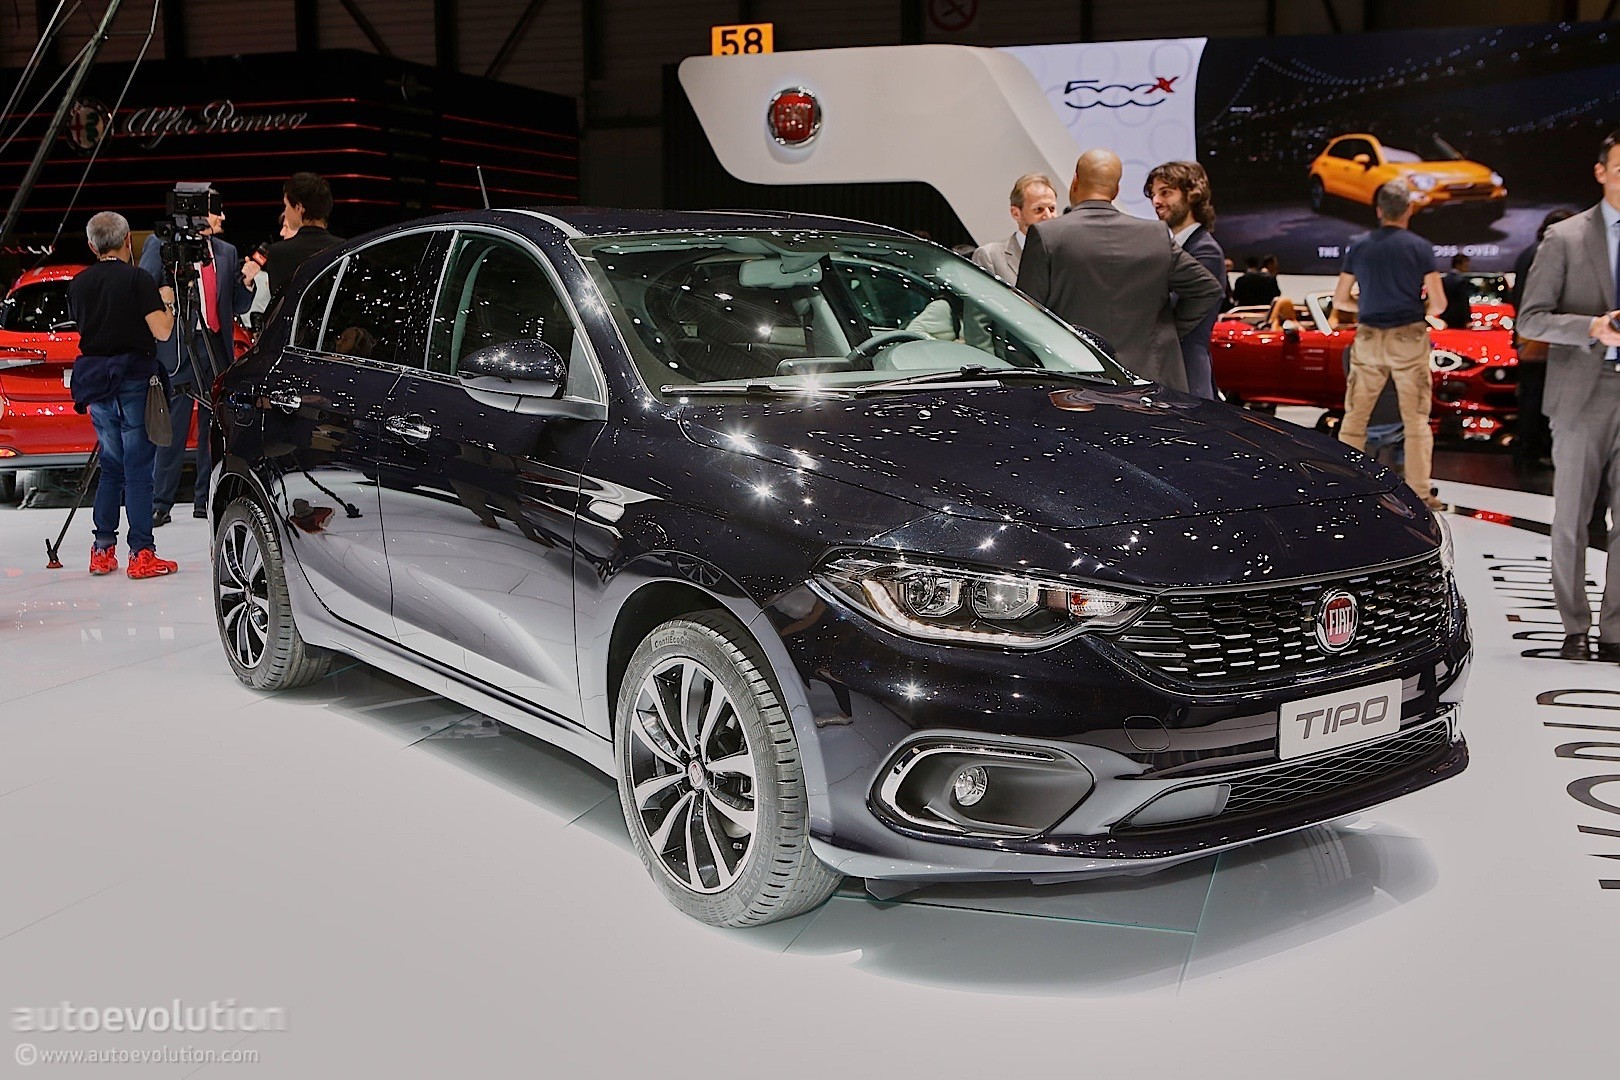 The return of the unmistakable abarth roadster, born in collaboration with the racing team experience. 2016 Fiat Tipo Hatchback Priced at €12,750 in Italy